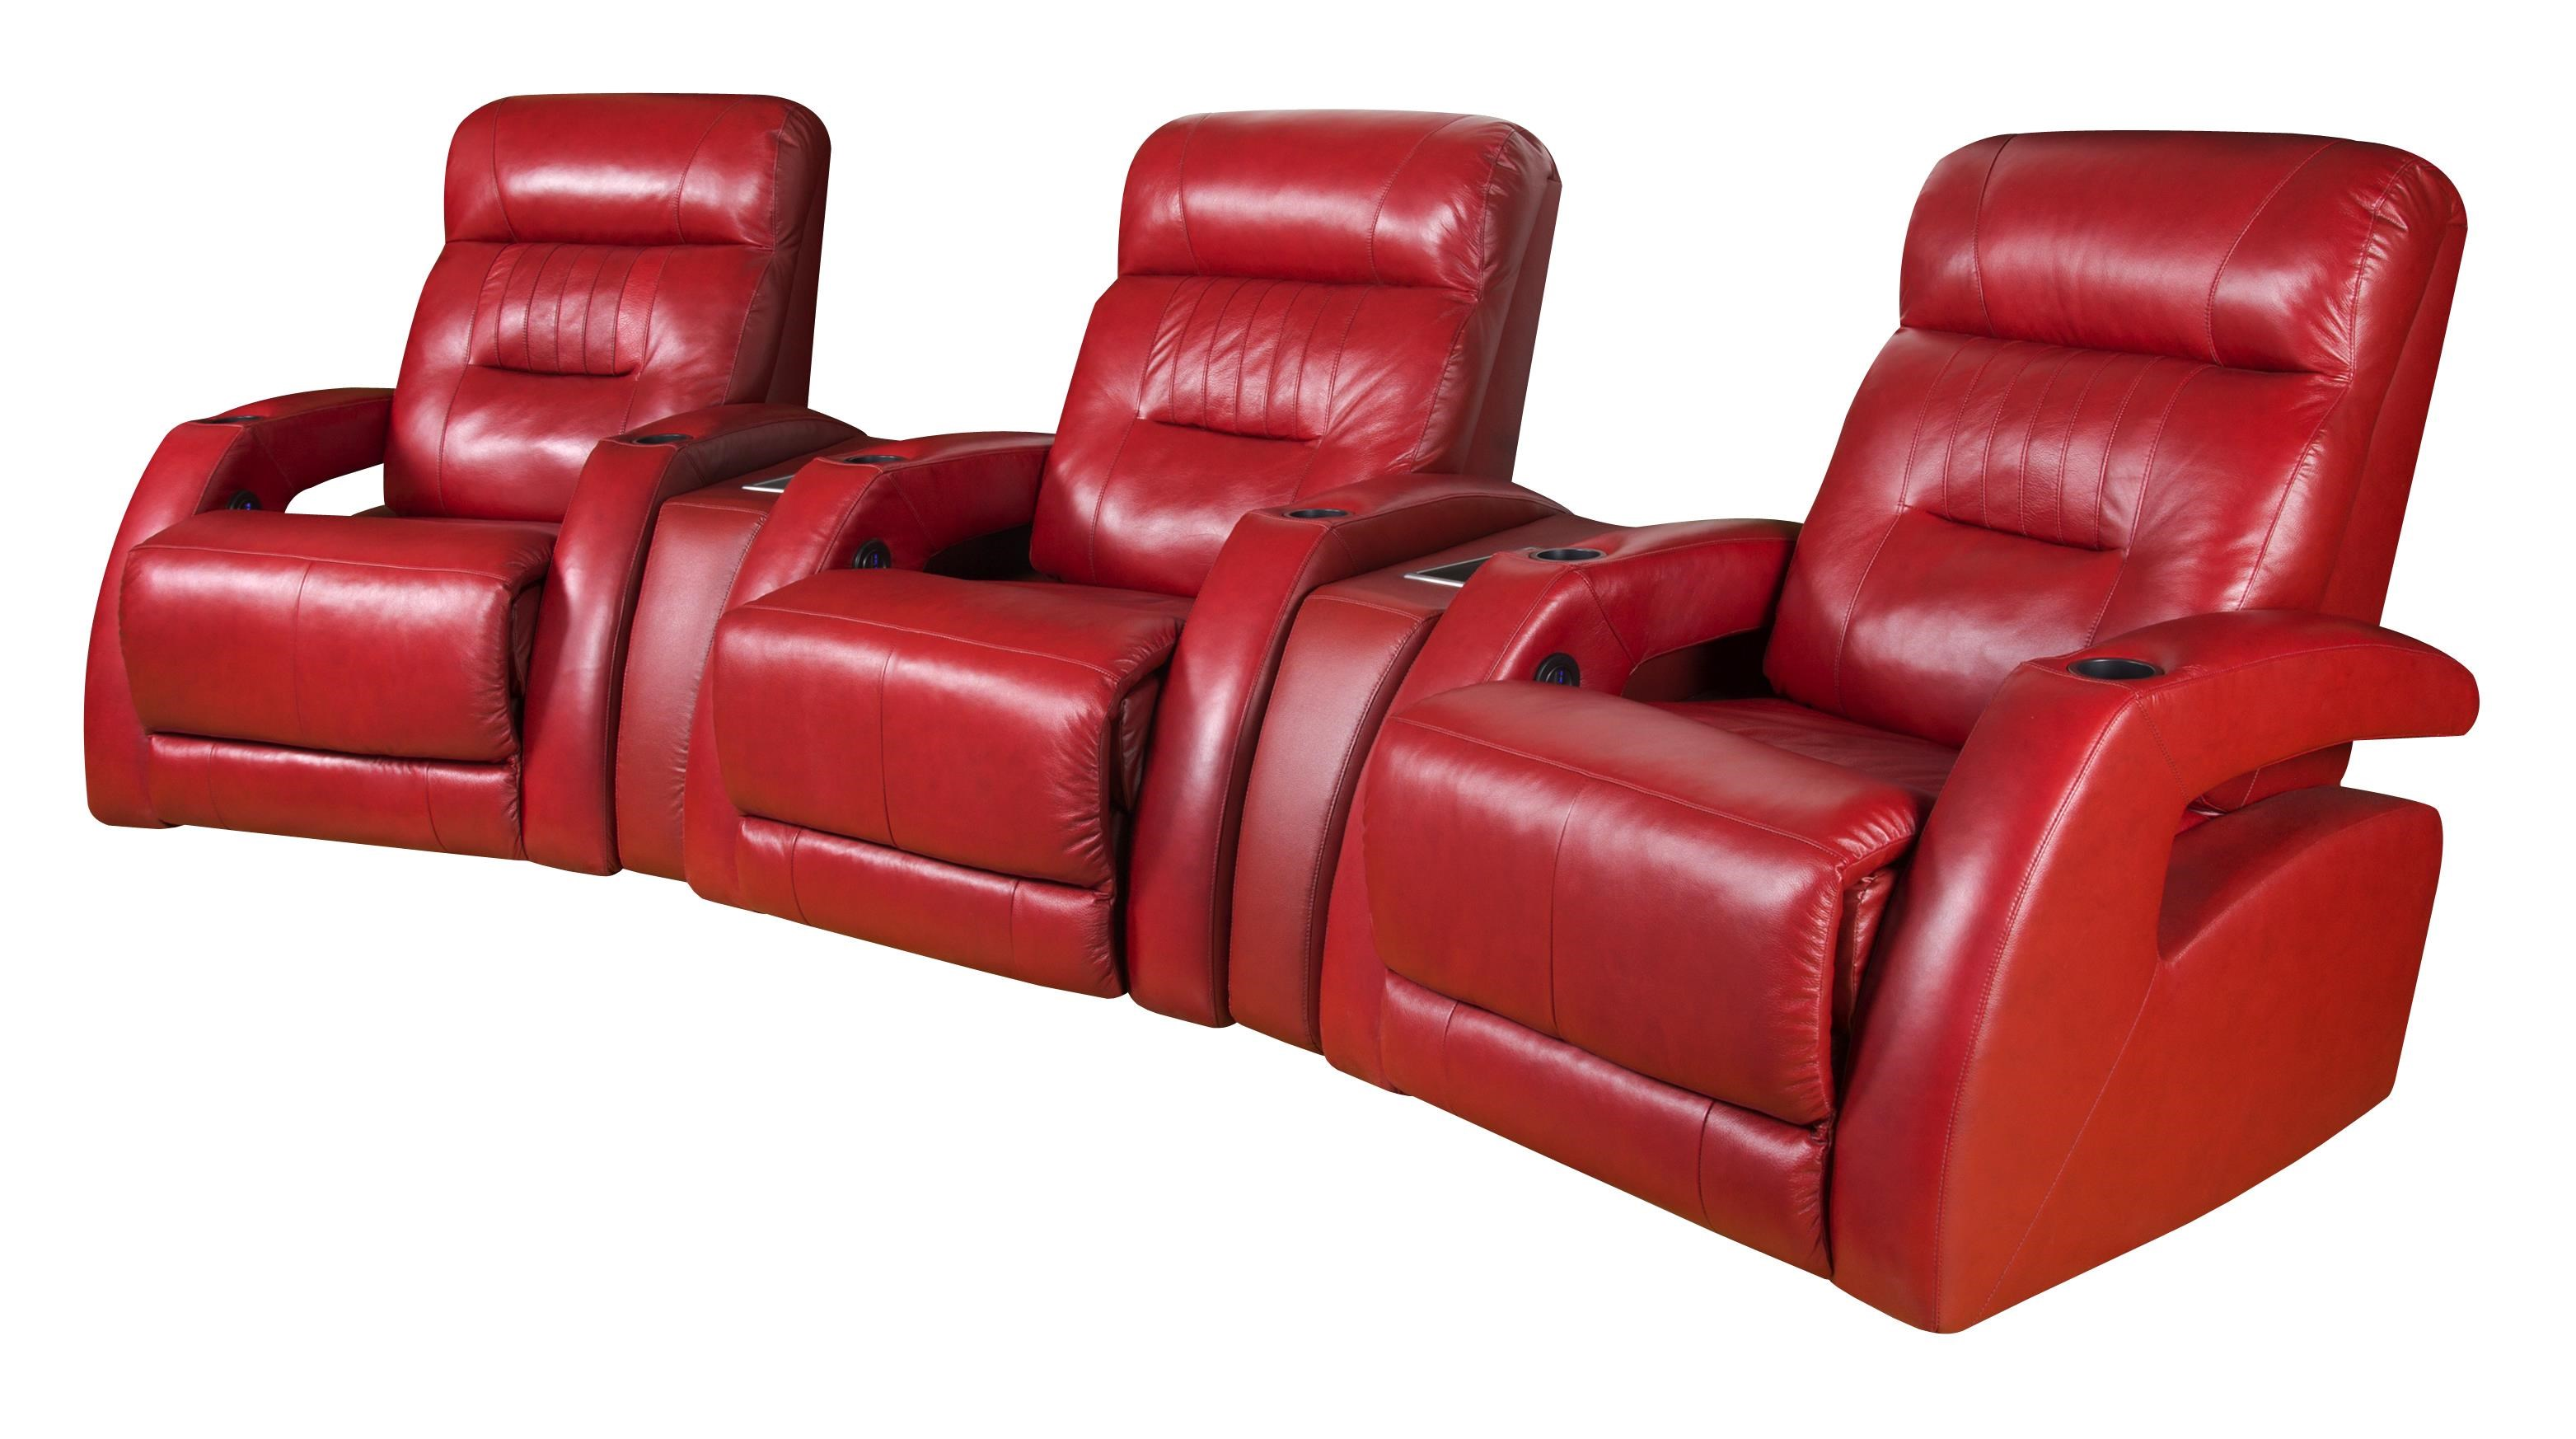 Charmant Southern Motion VivaTheater Seating Sectional ...